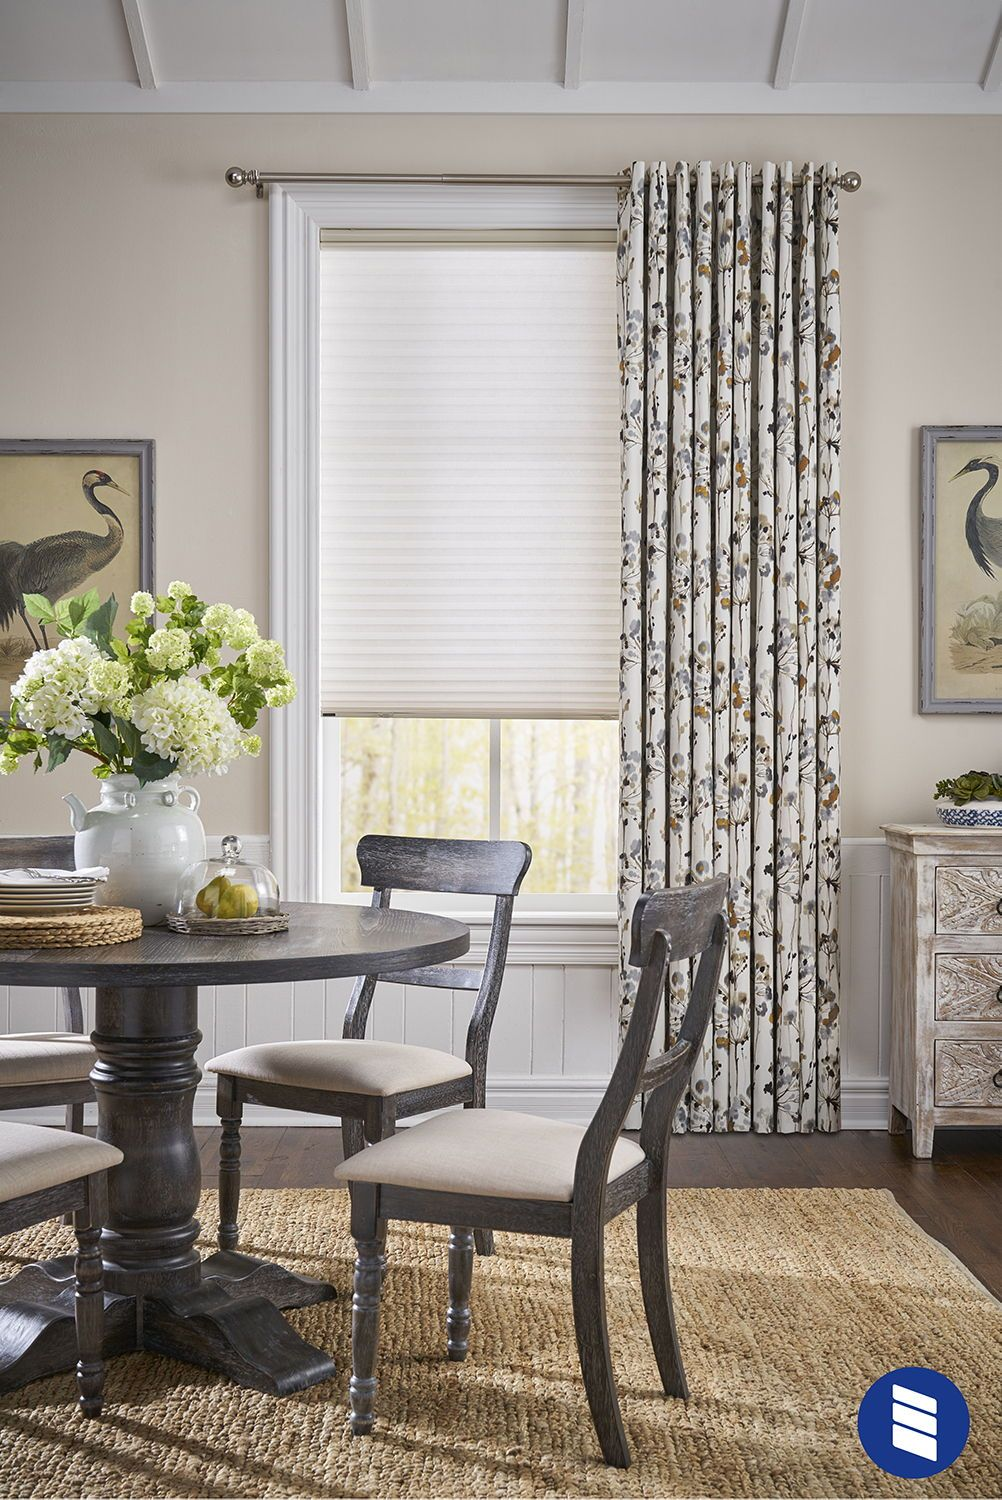 Light Filtering Cellular Shade Curtains With Blinds Dining Room